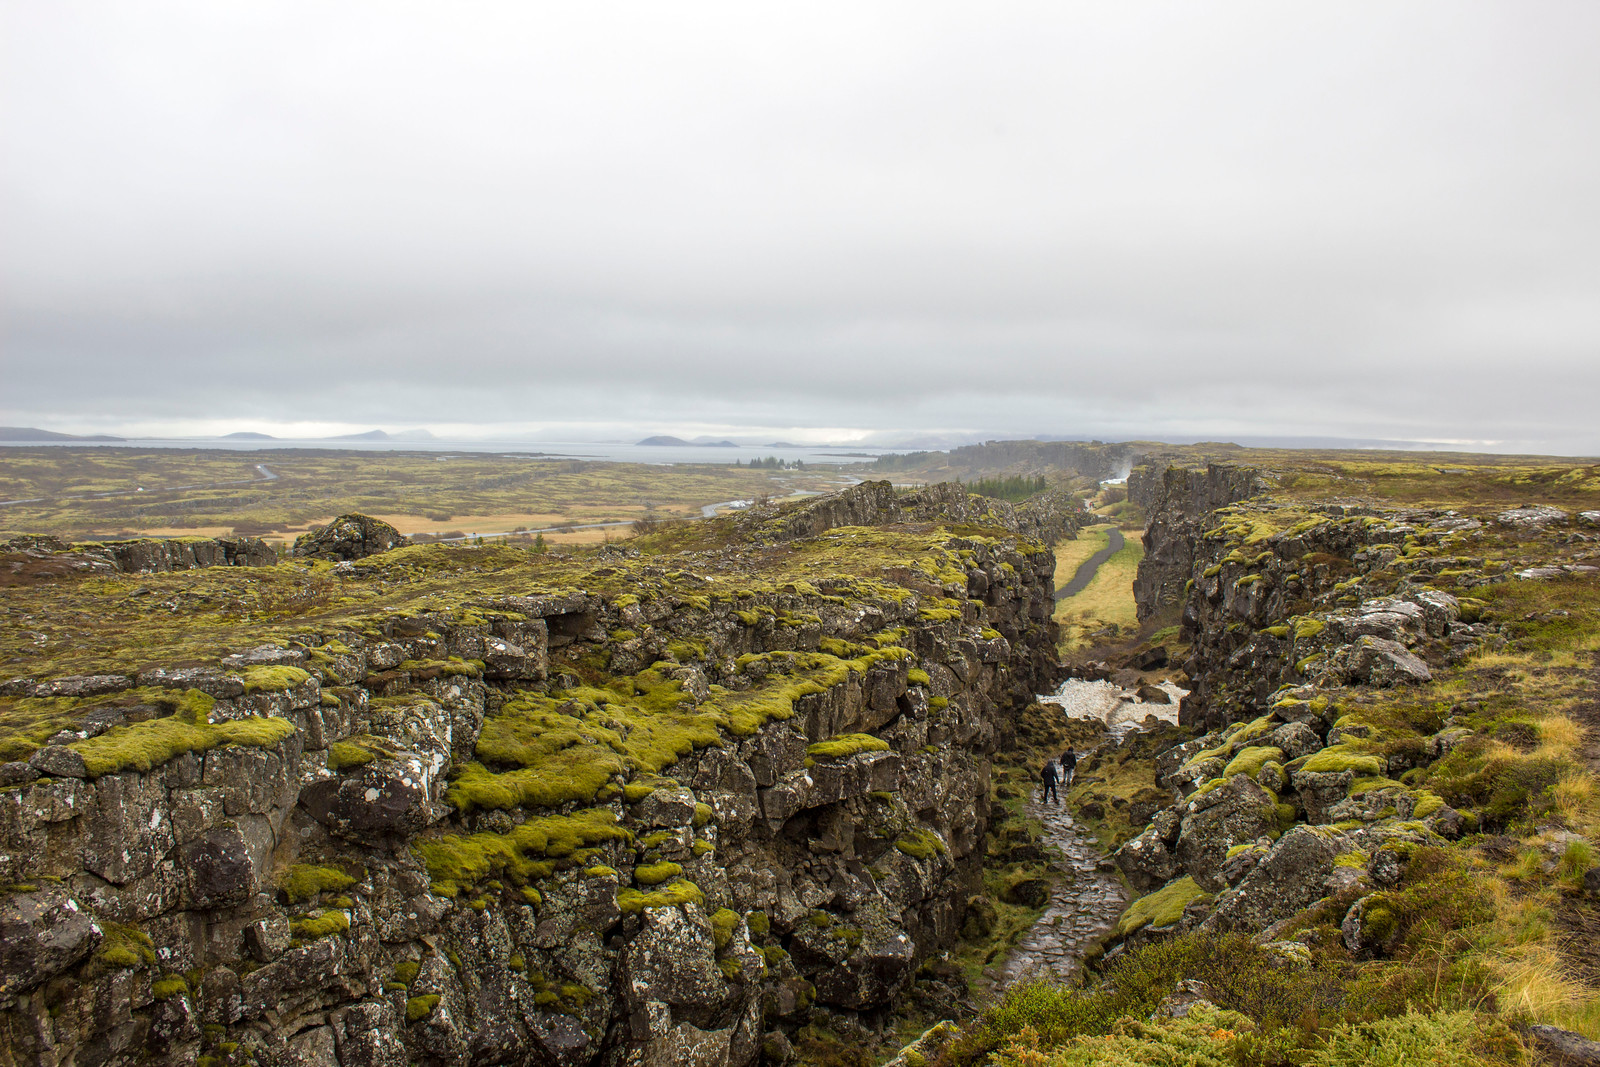 Taking a Golden Circle self drive tour in Iceland - Planning the perfect Golden Circle itinerary